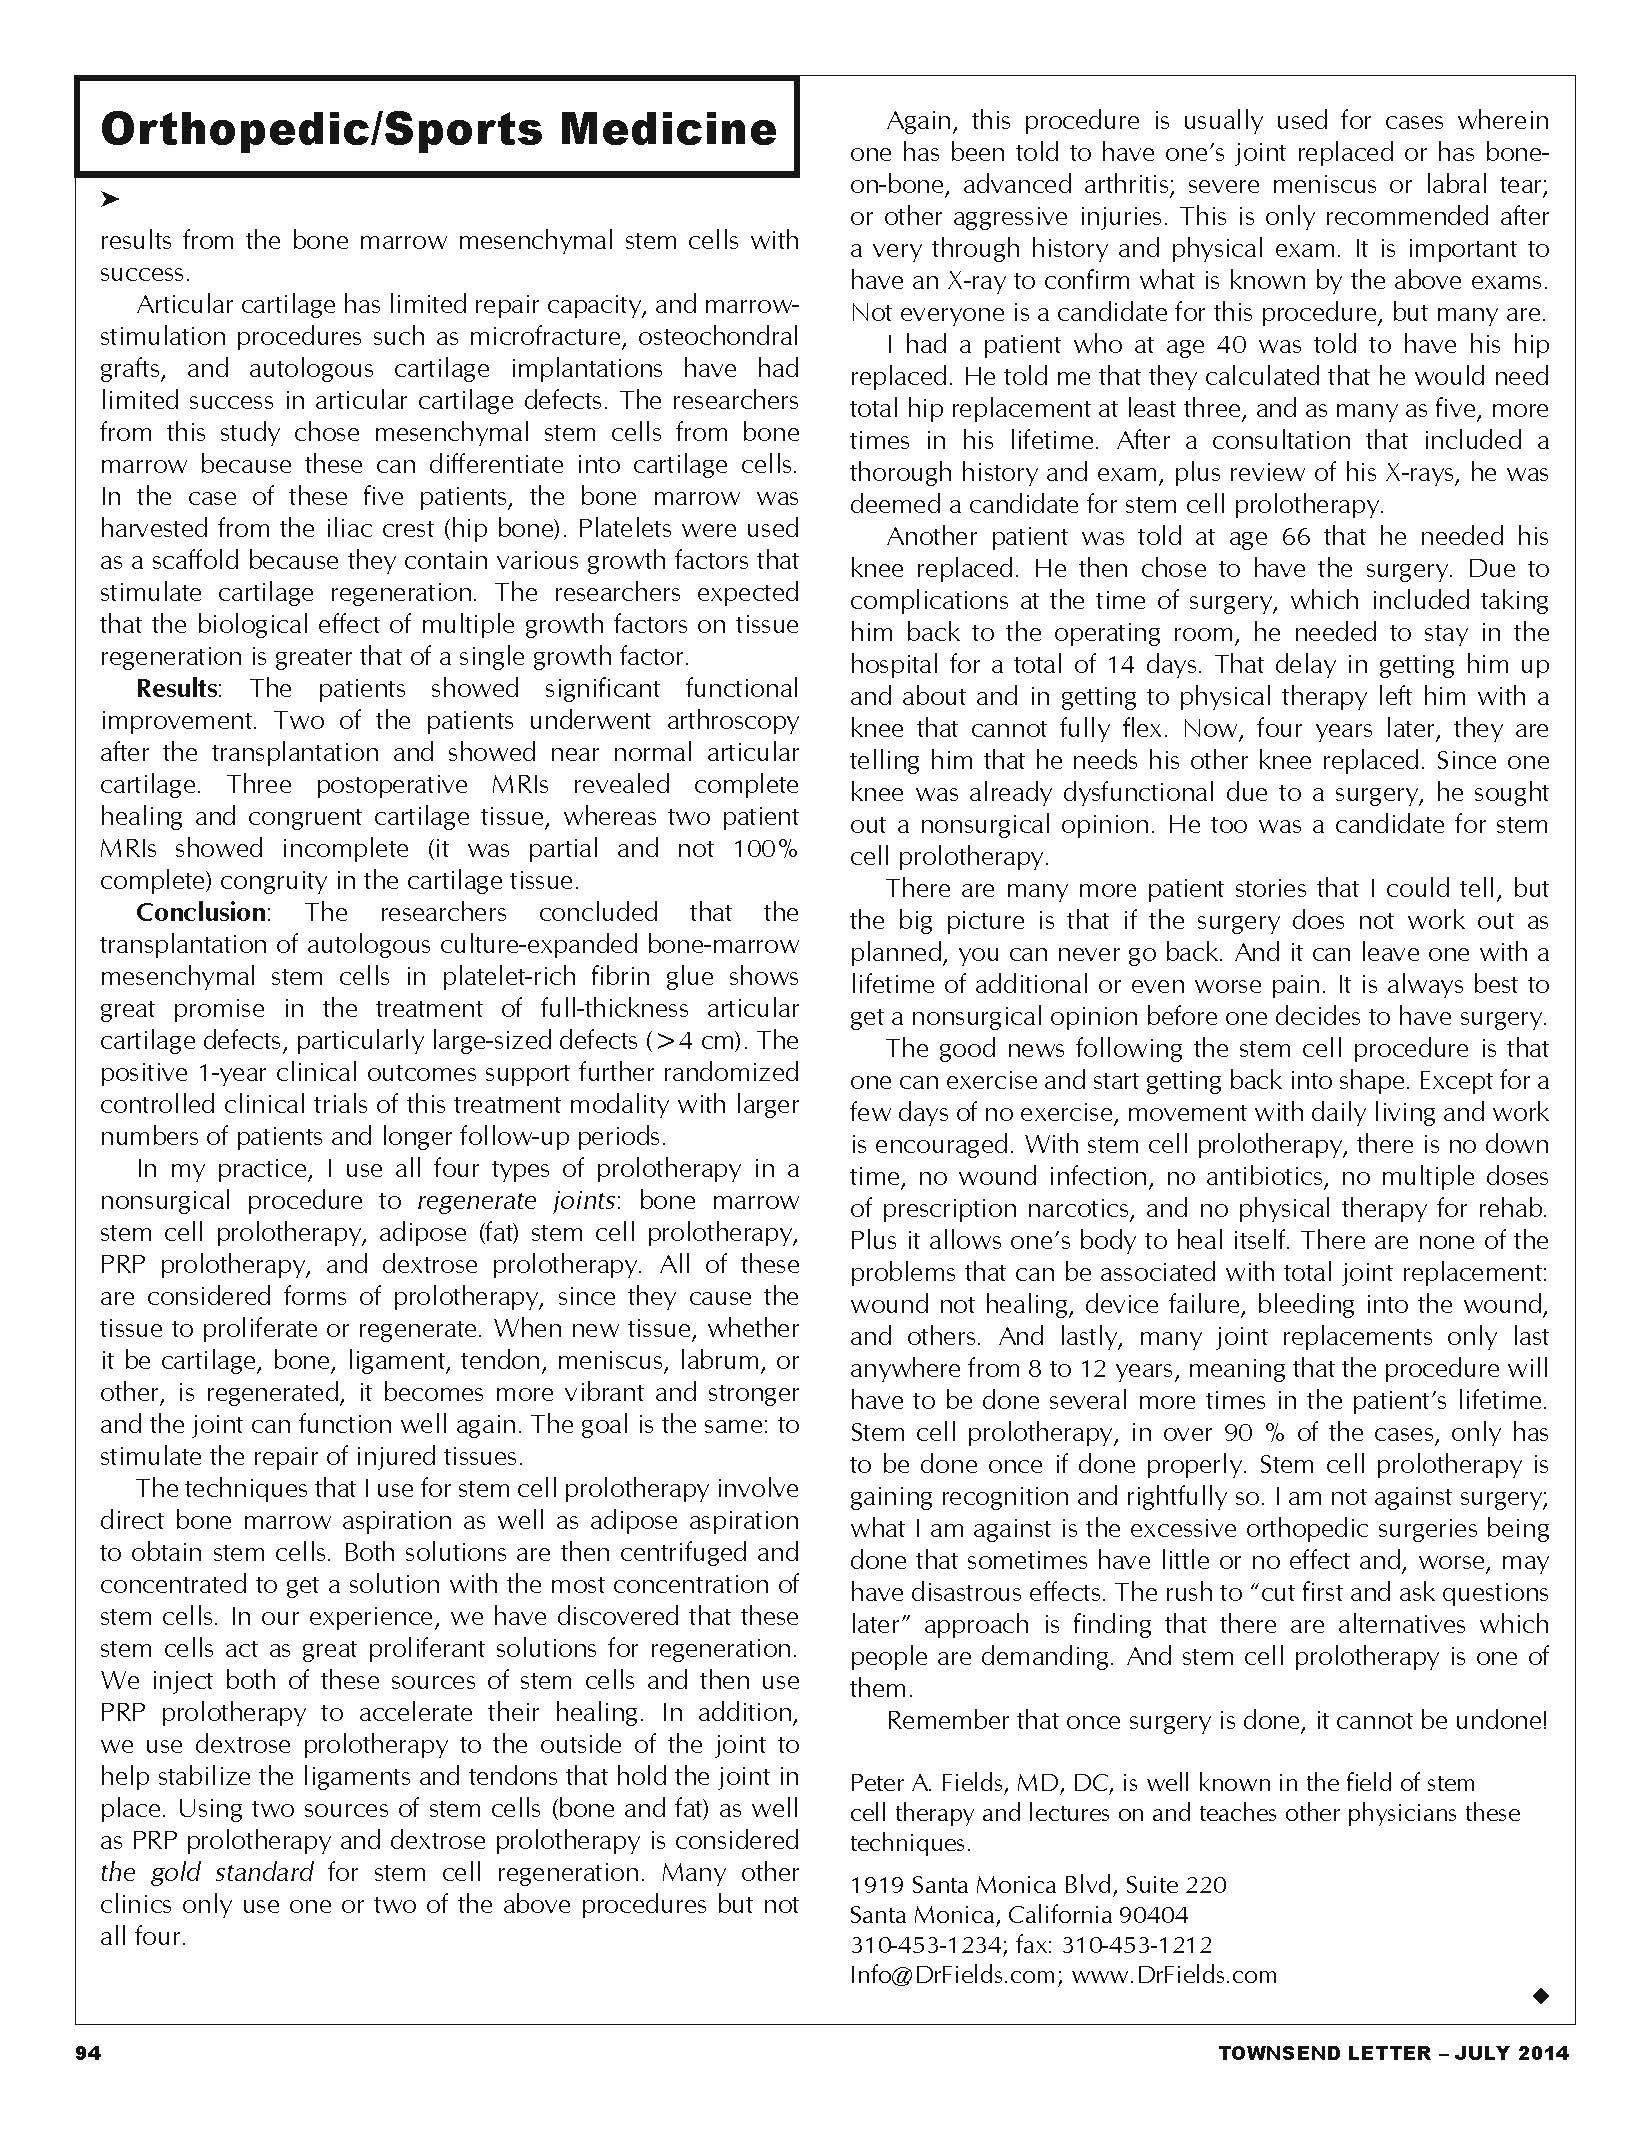 Fields July Article2014 Page 2